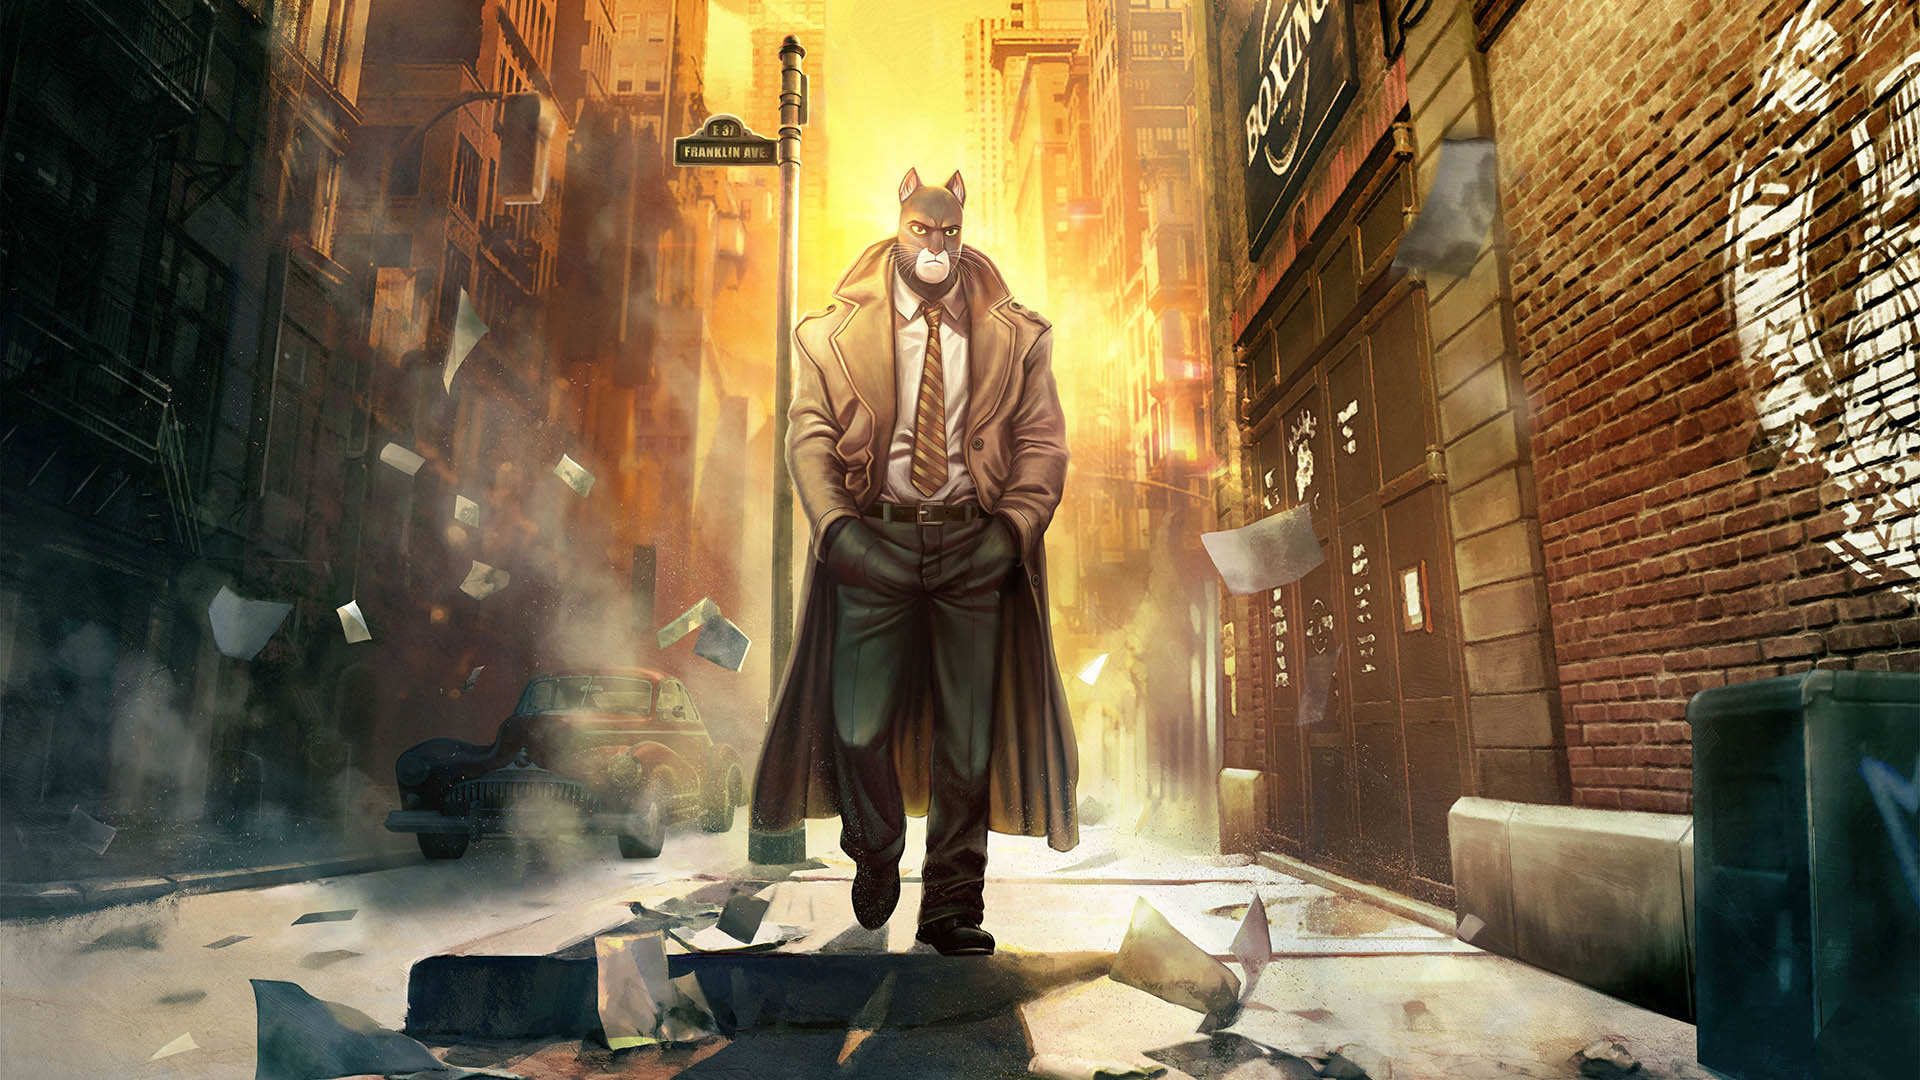 Wot I think: Blacksad: Under the Skin